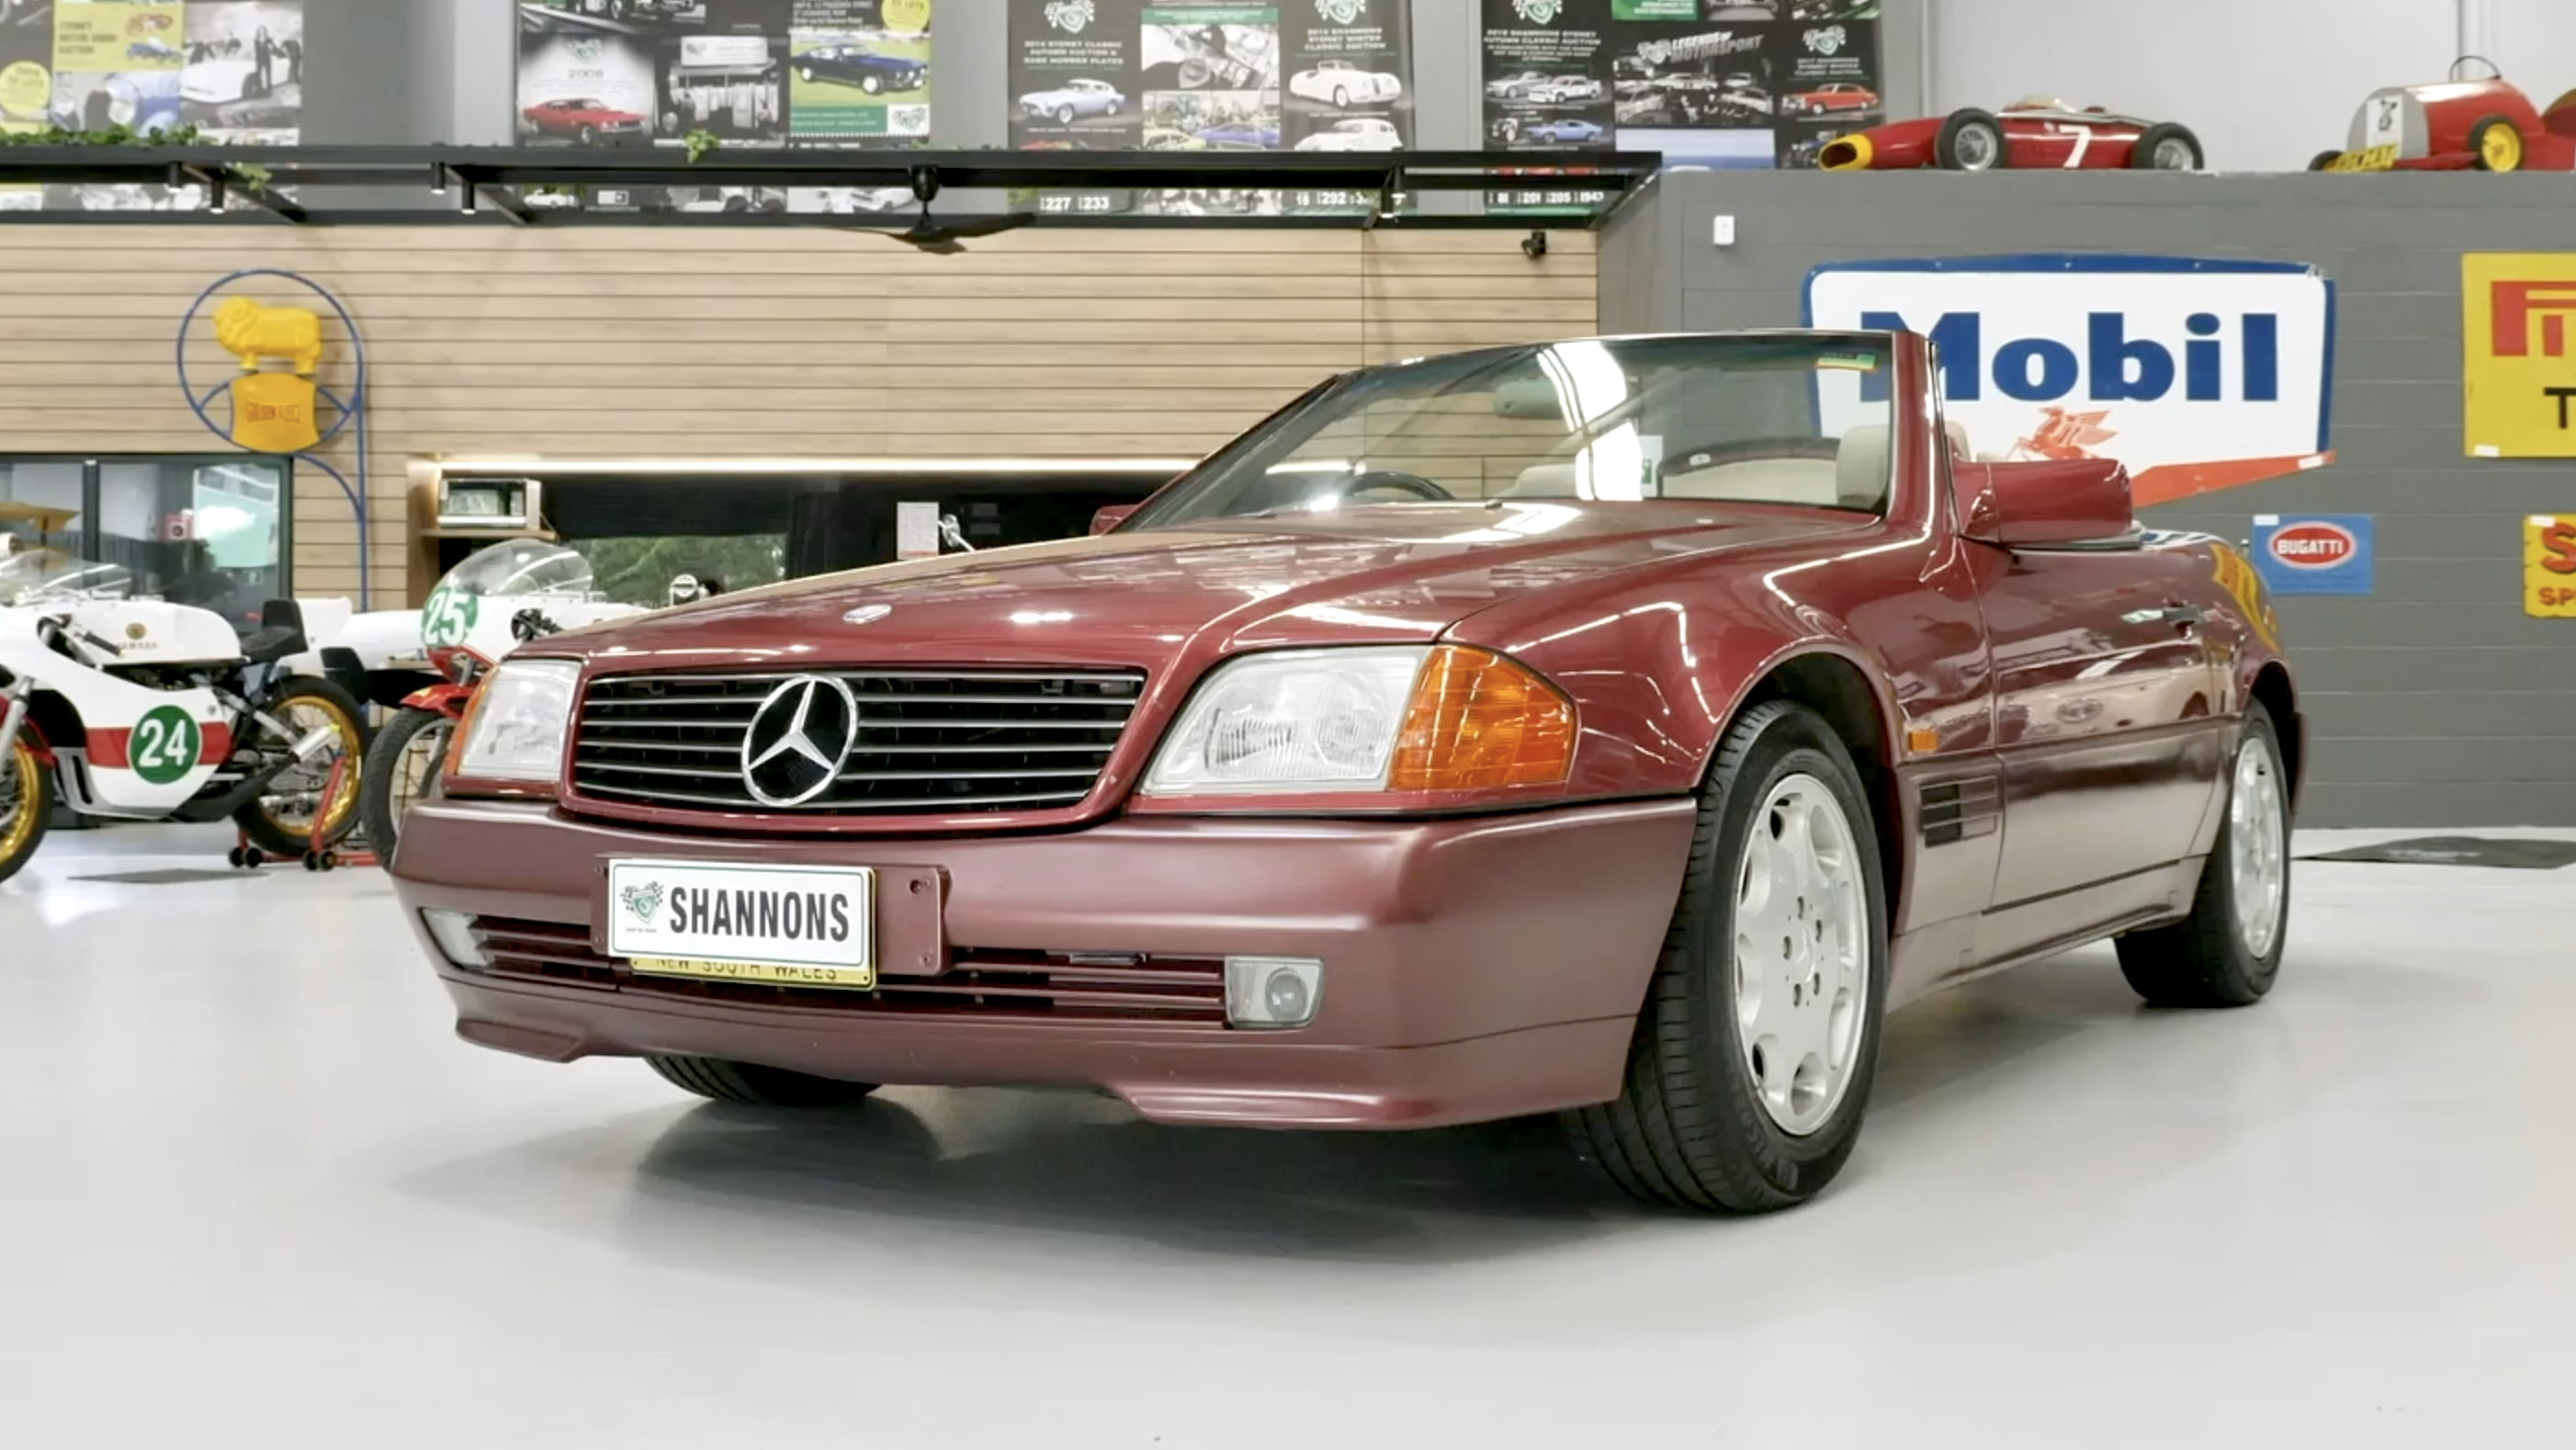 1994 Mercedes-Benz 500SL R129 Convertible - 2021 Shannons Summer Timed Online Auction